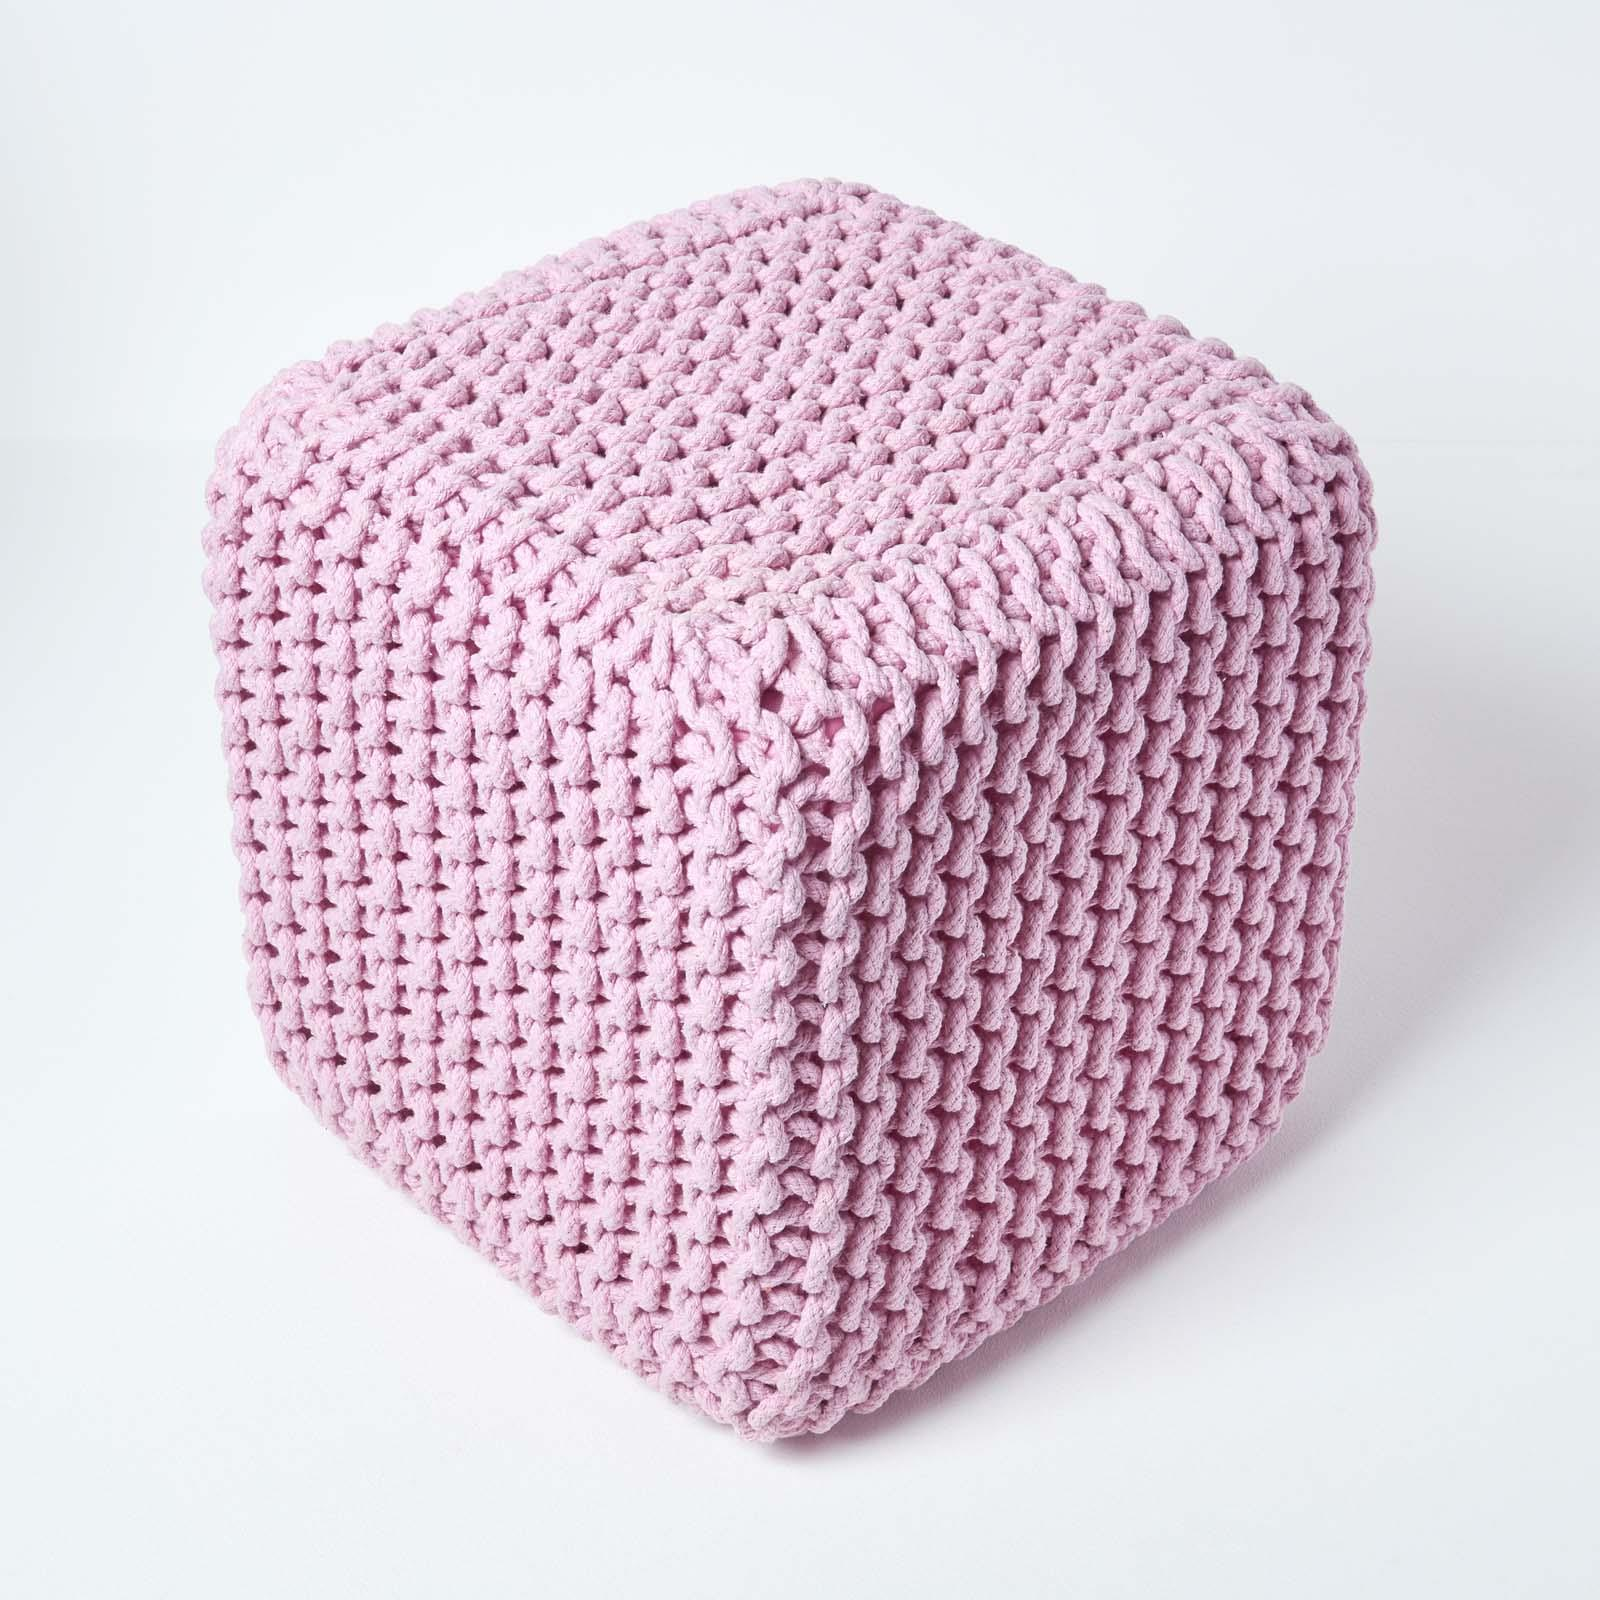 Hand-Knitted-100-Cotton-Pouffes-Round-Sphere-Or-Cube-Square-Chunky-Footstools thumbnail 147